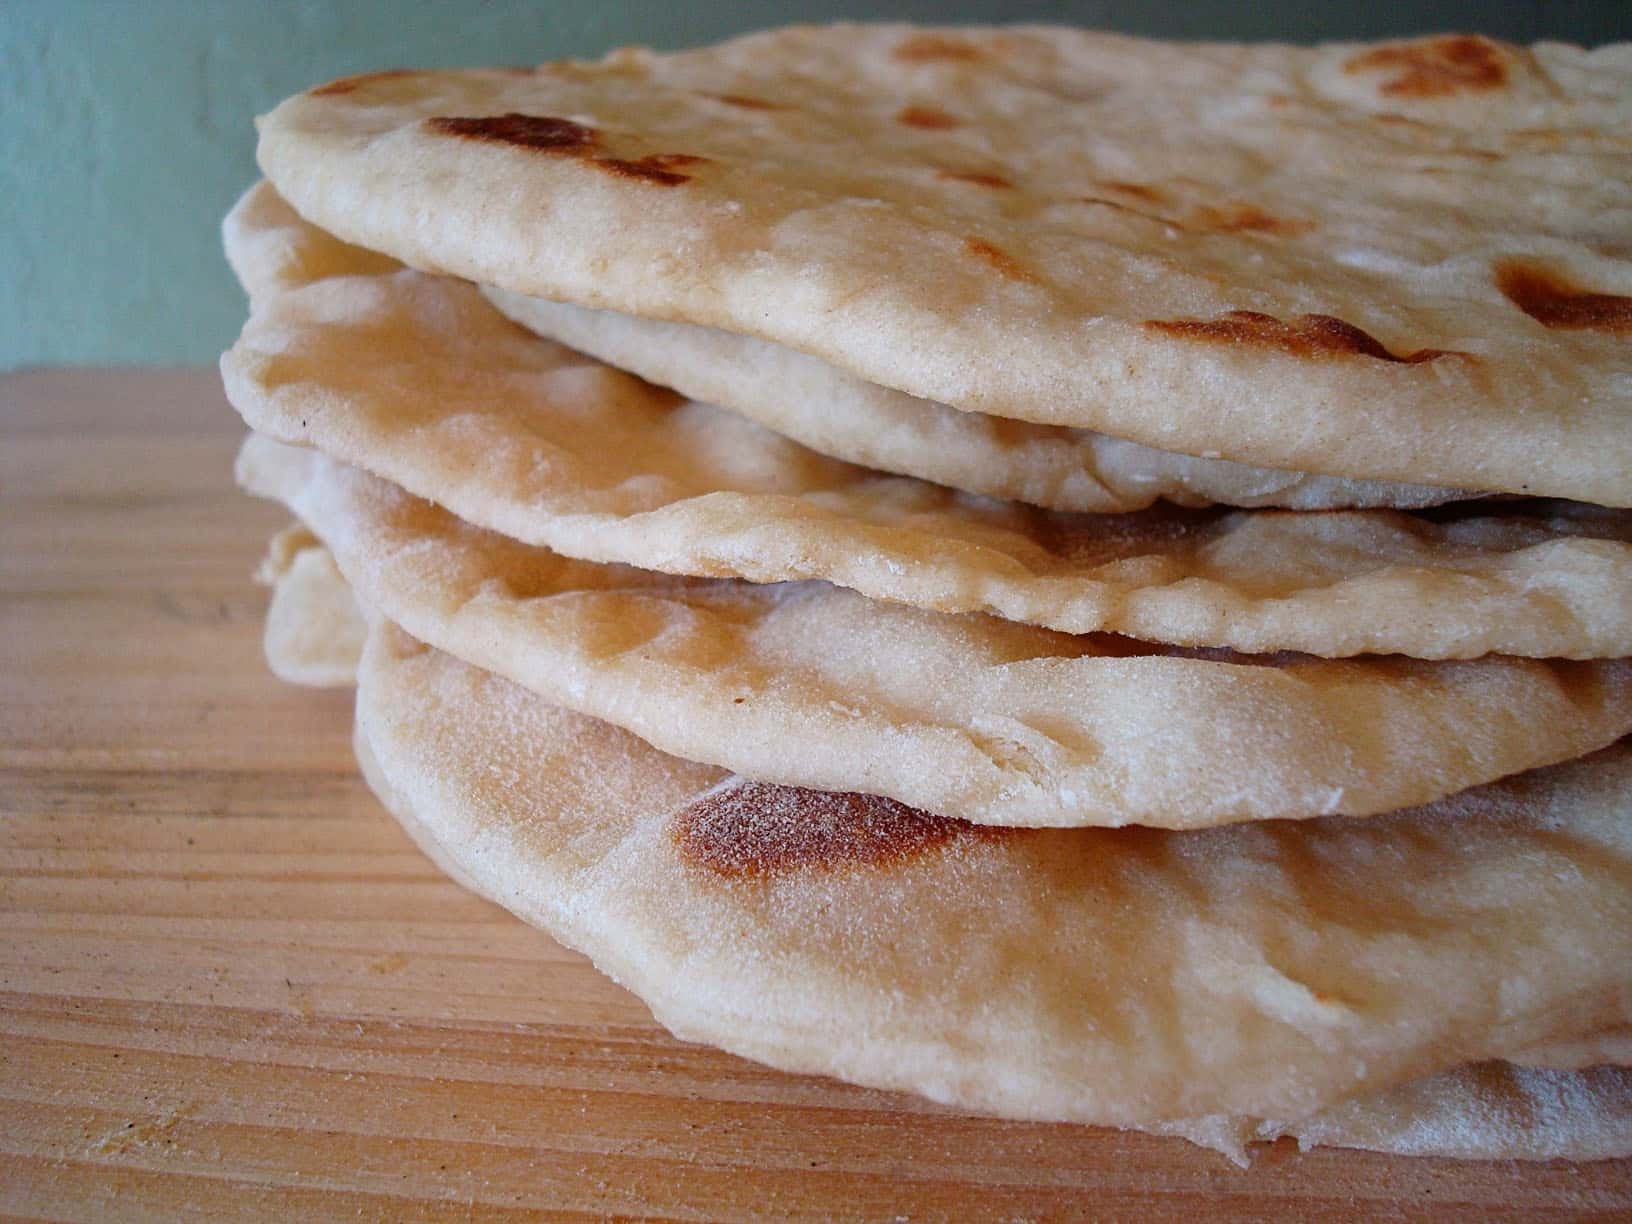 stack of soft wrap bread on a table